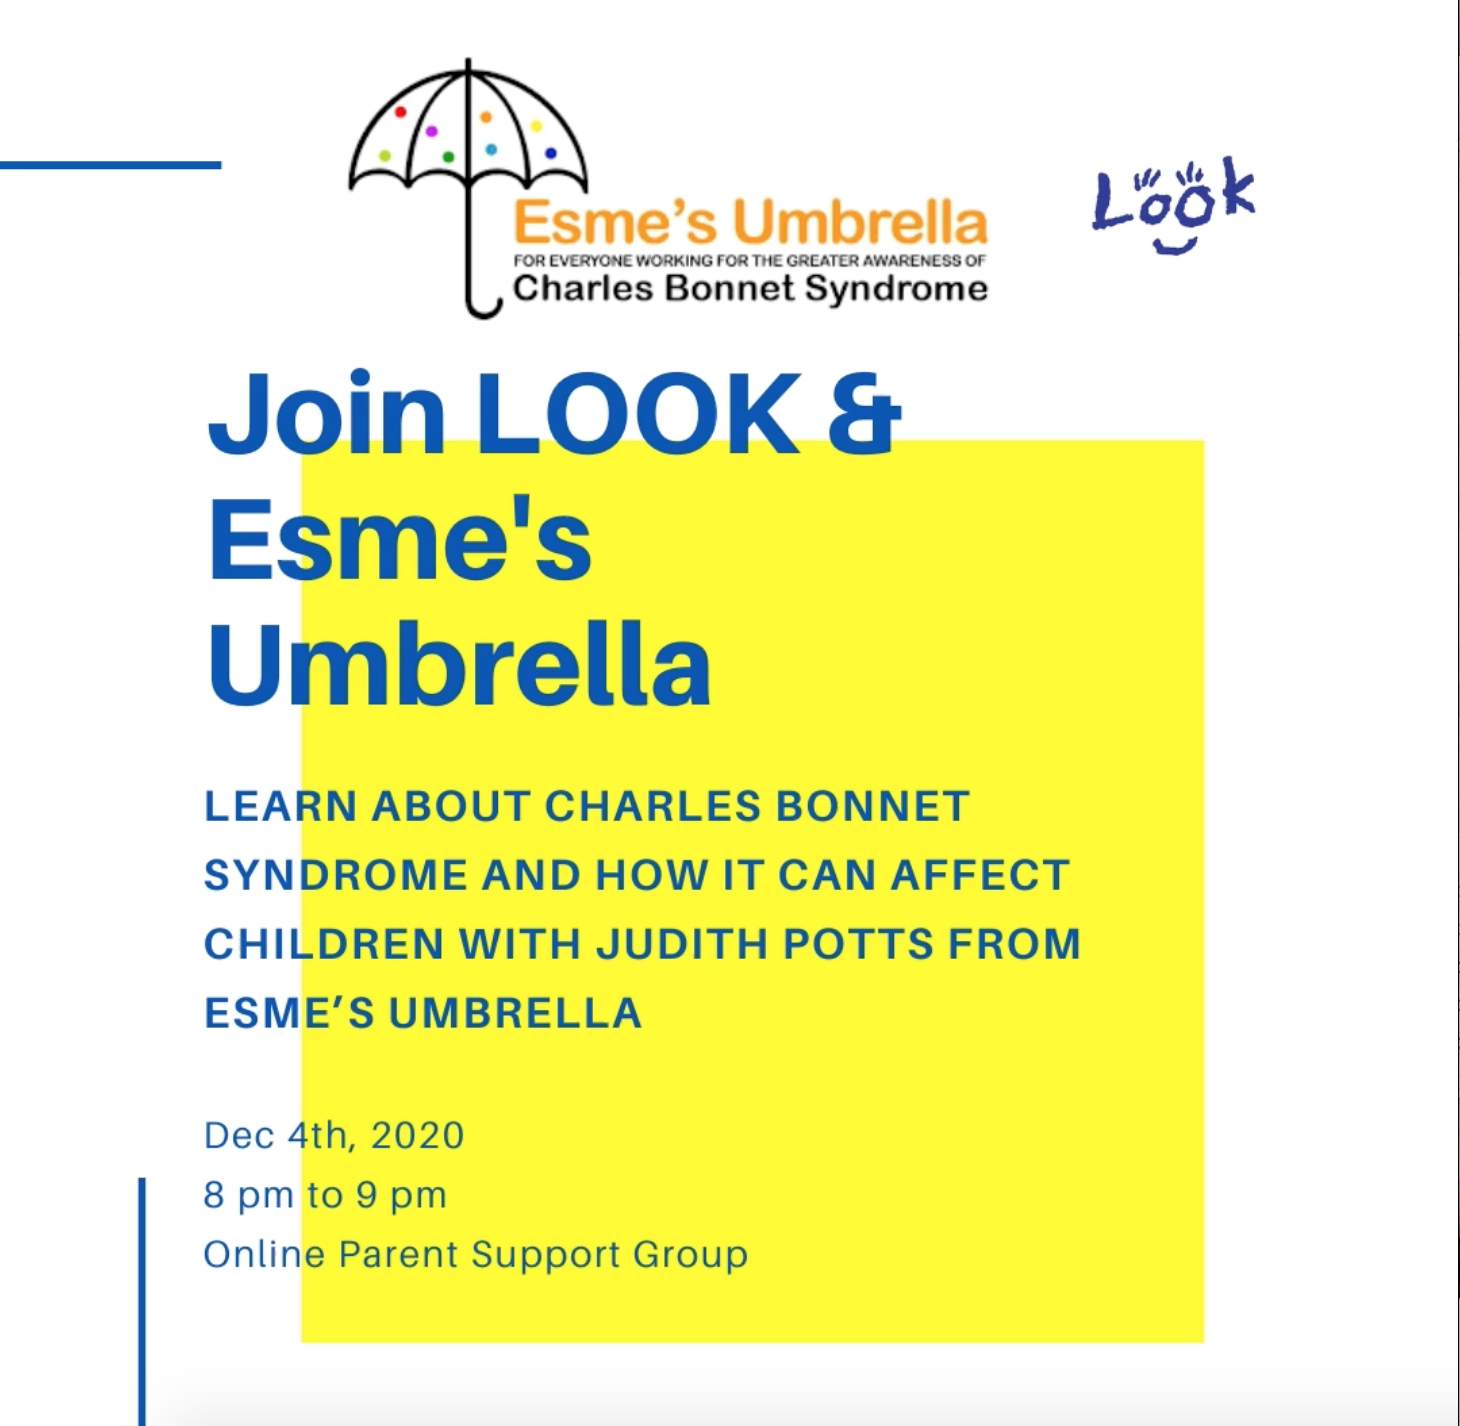 Blue text on a white and yellow background: Join LOOK & Esme's Umbrella Learn about Charles Bonnet Syndrome and how it can affect children with Judith Potts from Esme's Umbrella Dec 4th, 2020 8 pm to 9 pm Online Parent Support Group